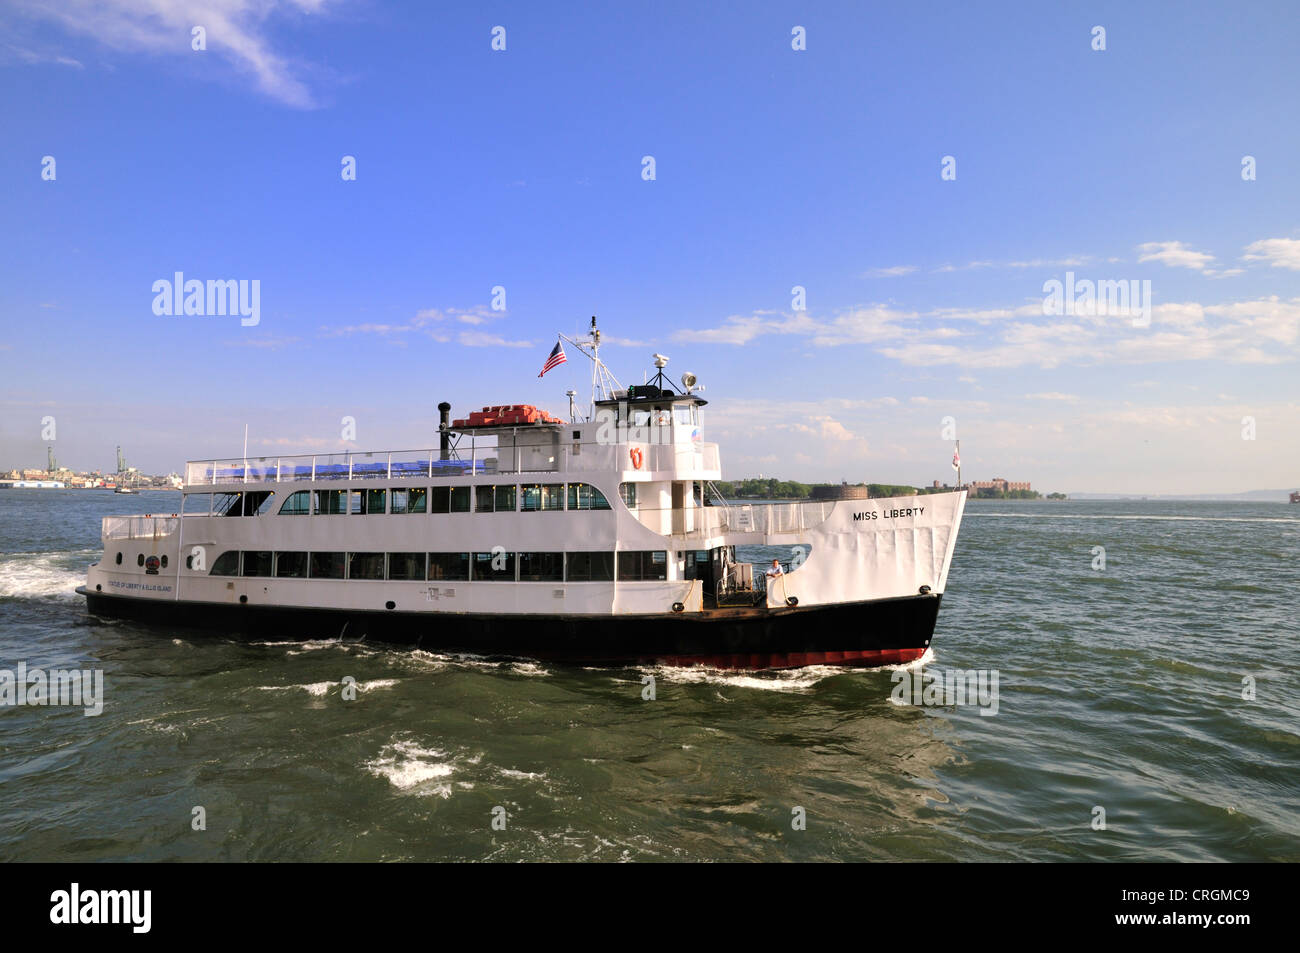 The excursion boat Miss Liberty on its way to the Statue of Liberty and Ellis Island from Battery Park, New York - Stock Image